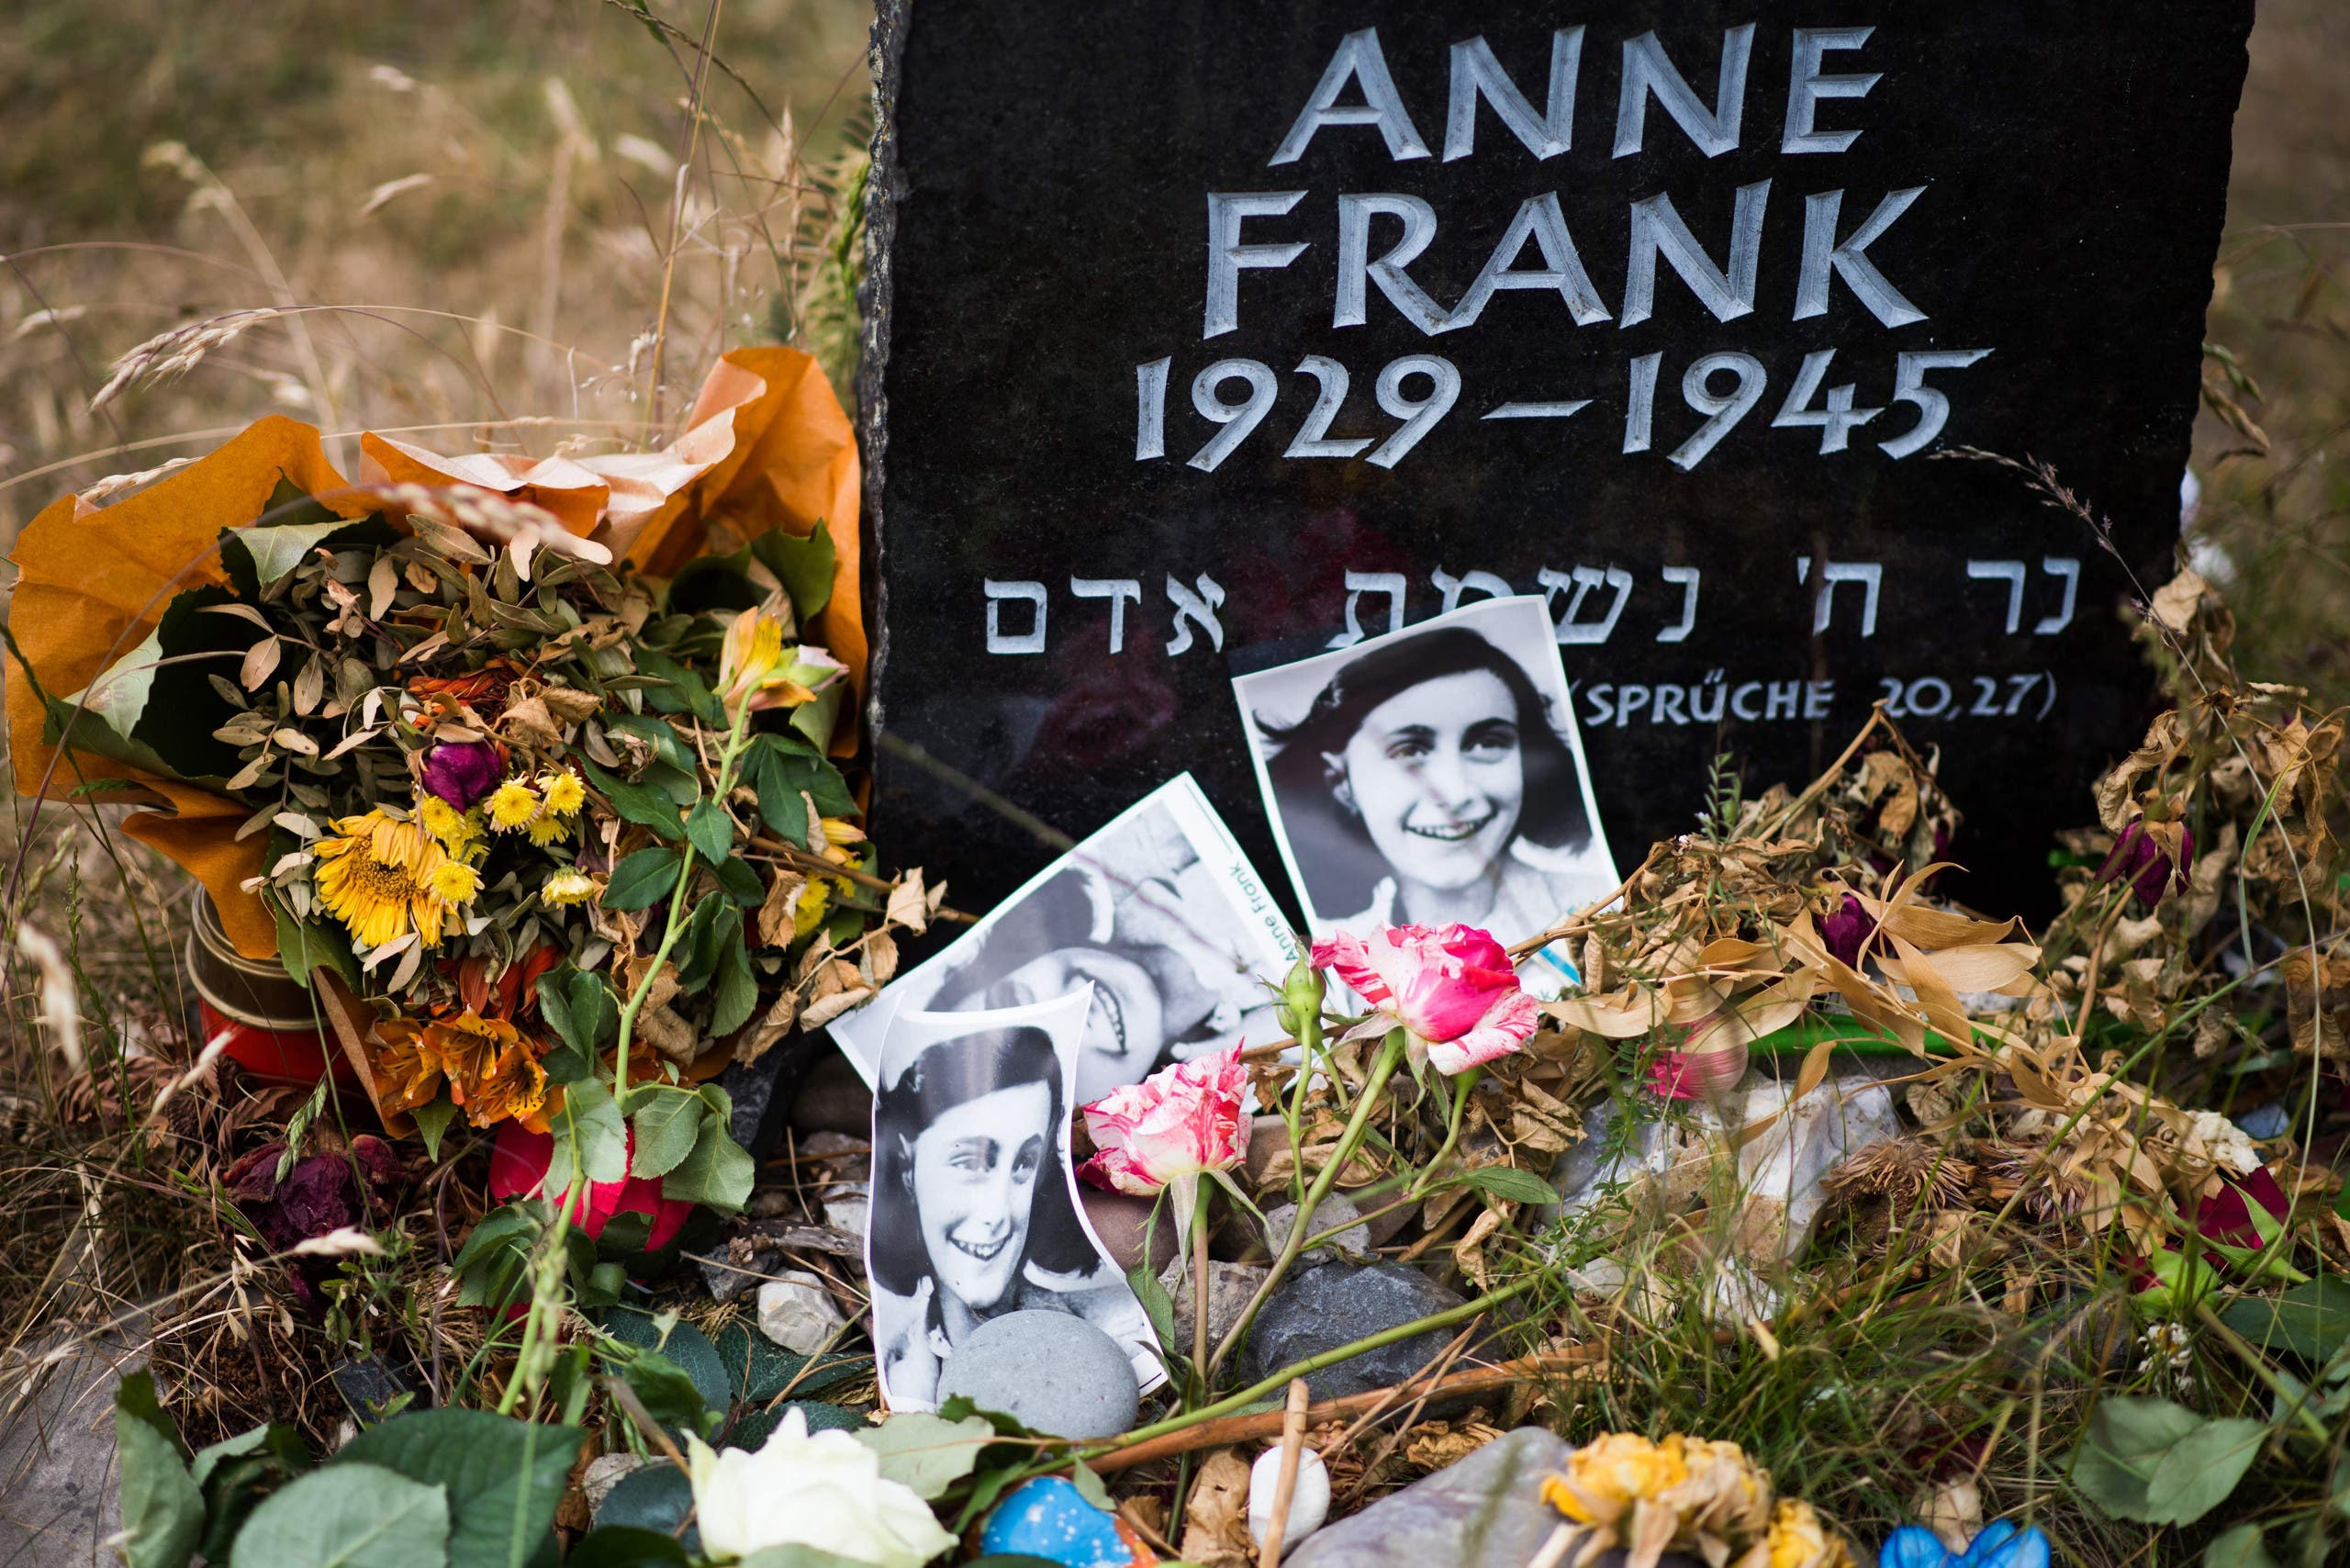 This file photo taken on June 21, 2015 shows a memorial stone for Margot Frank and Anne Frank pictured on the grounds of the former Prisoner of War (POW) and concentration camp Bergen-Belsen in Bergen, north of Hanover, central Germany. (AFP)